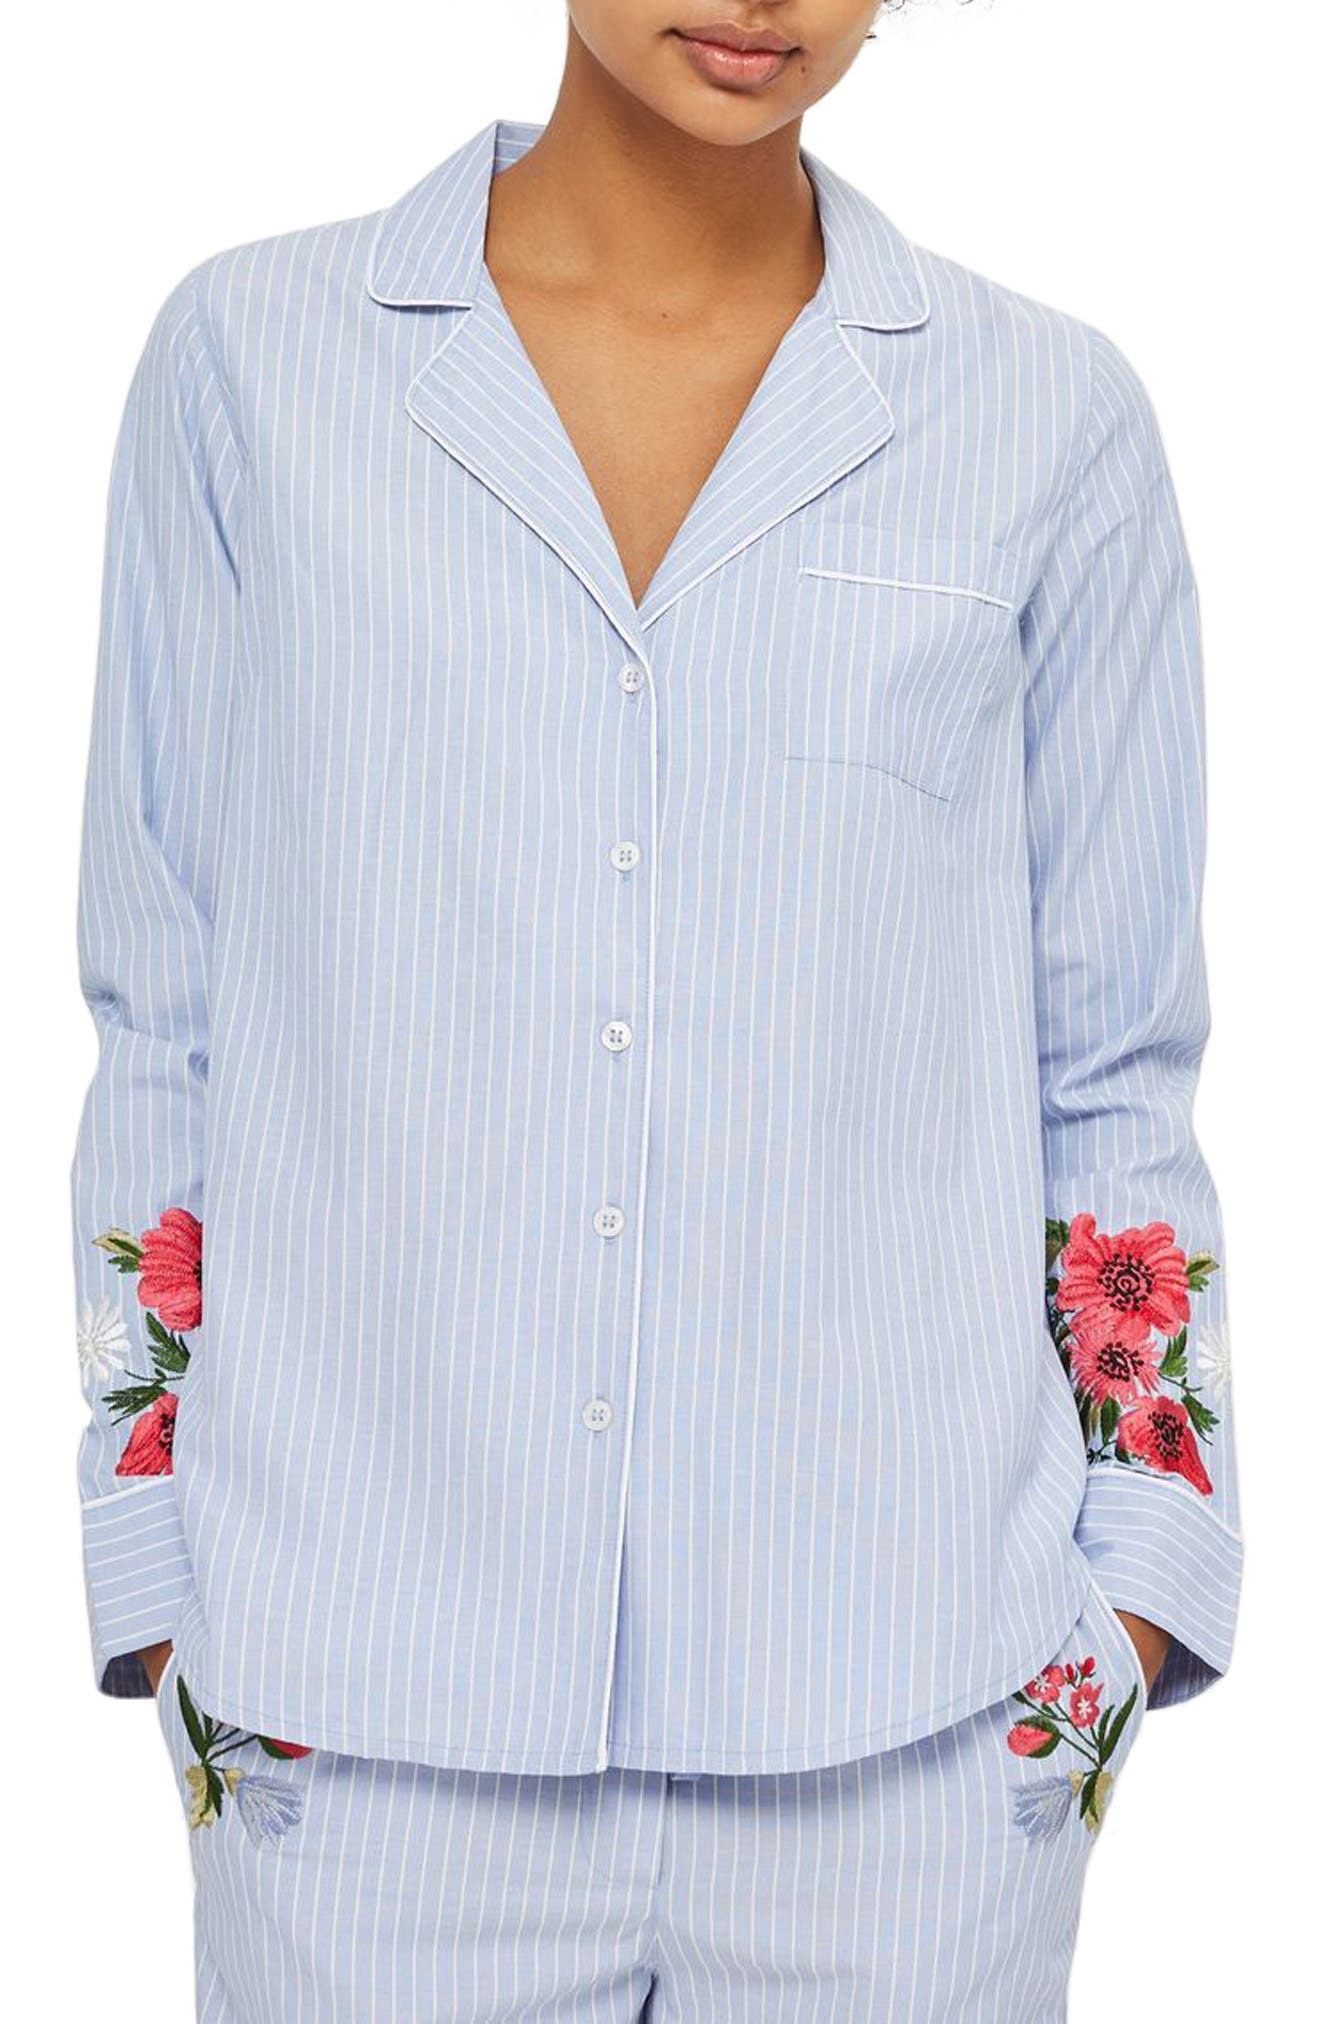 Floral Embroidered Stripe Nightshirt,                         Main,                         color, Blue Multi